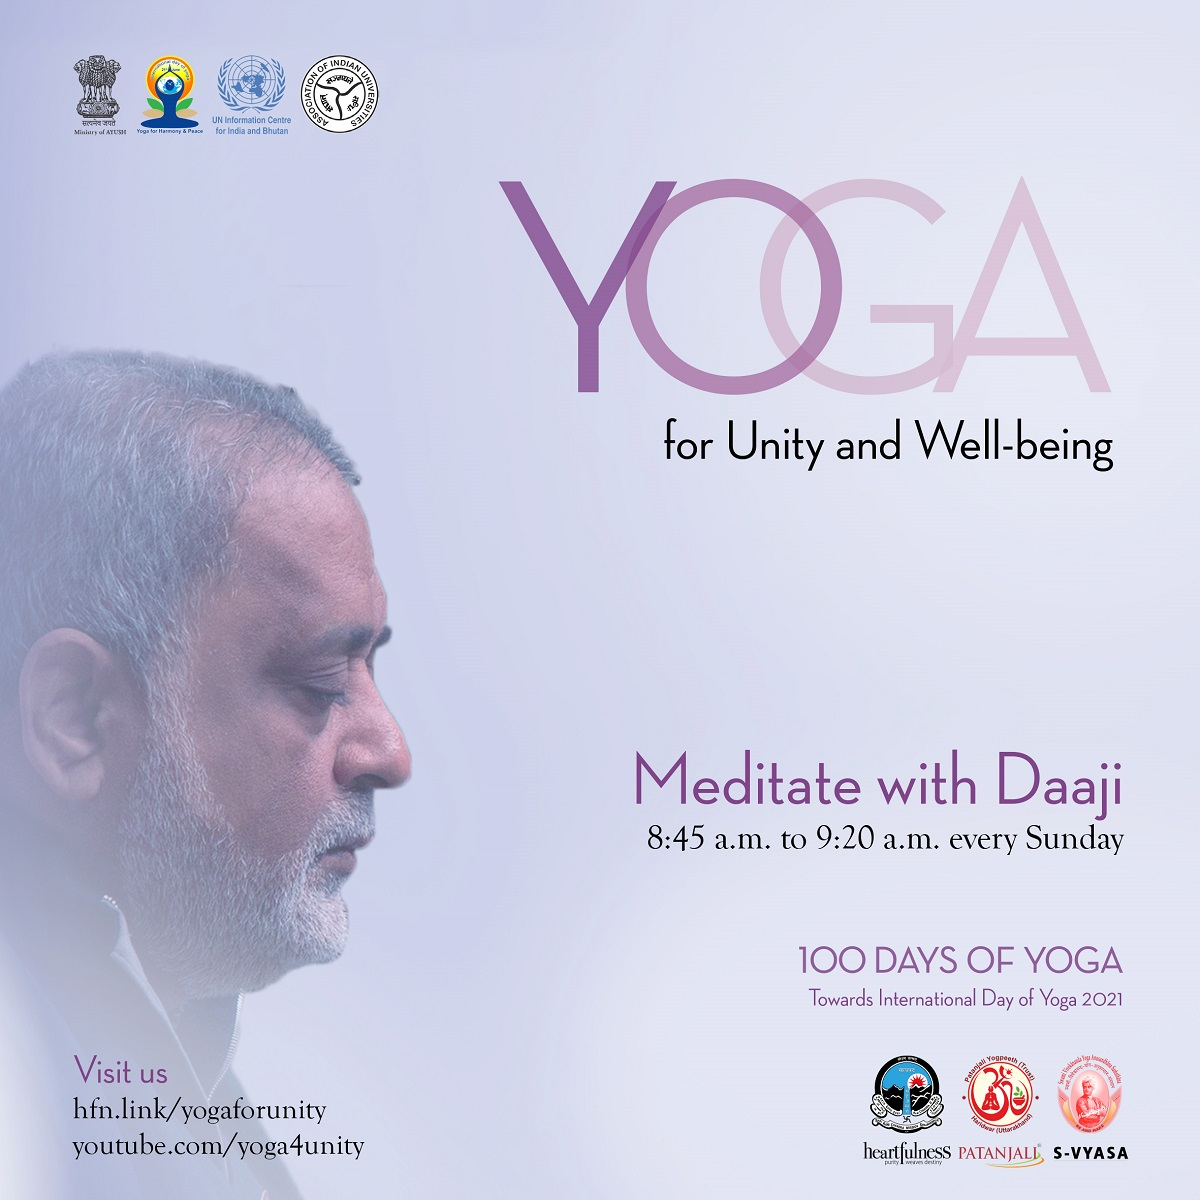 flyer of 100 days of yoga event